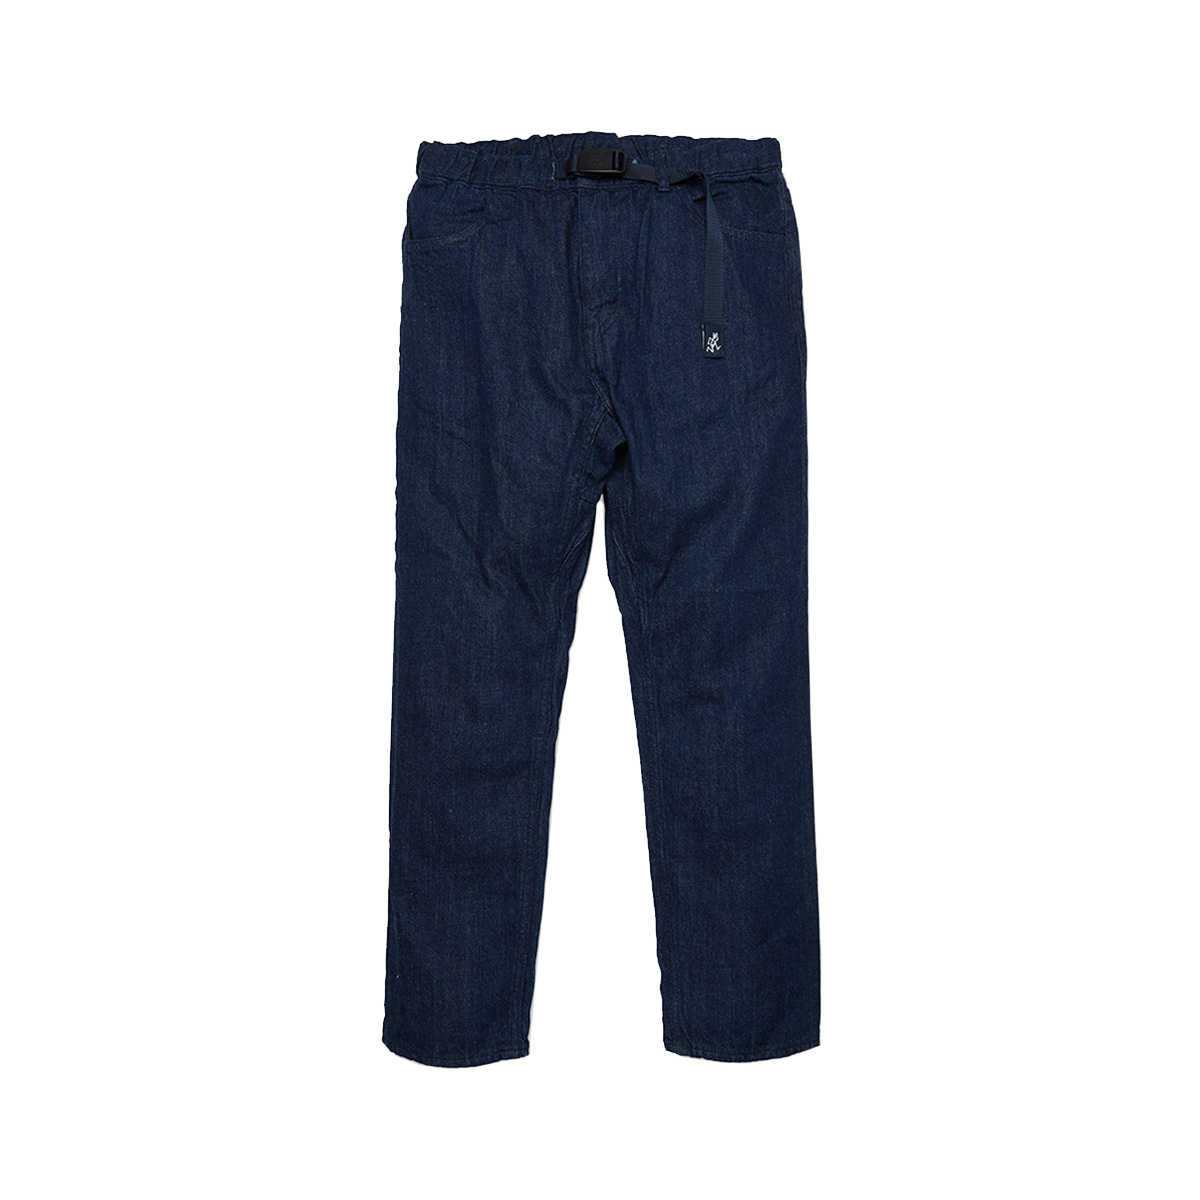 [GRAMICCI x ORDINARY FITS] ANKLE DENIM PANTS 'ONE WASH'